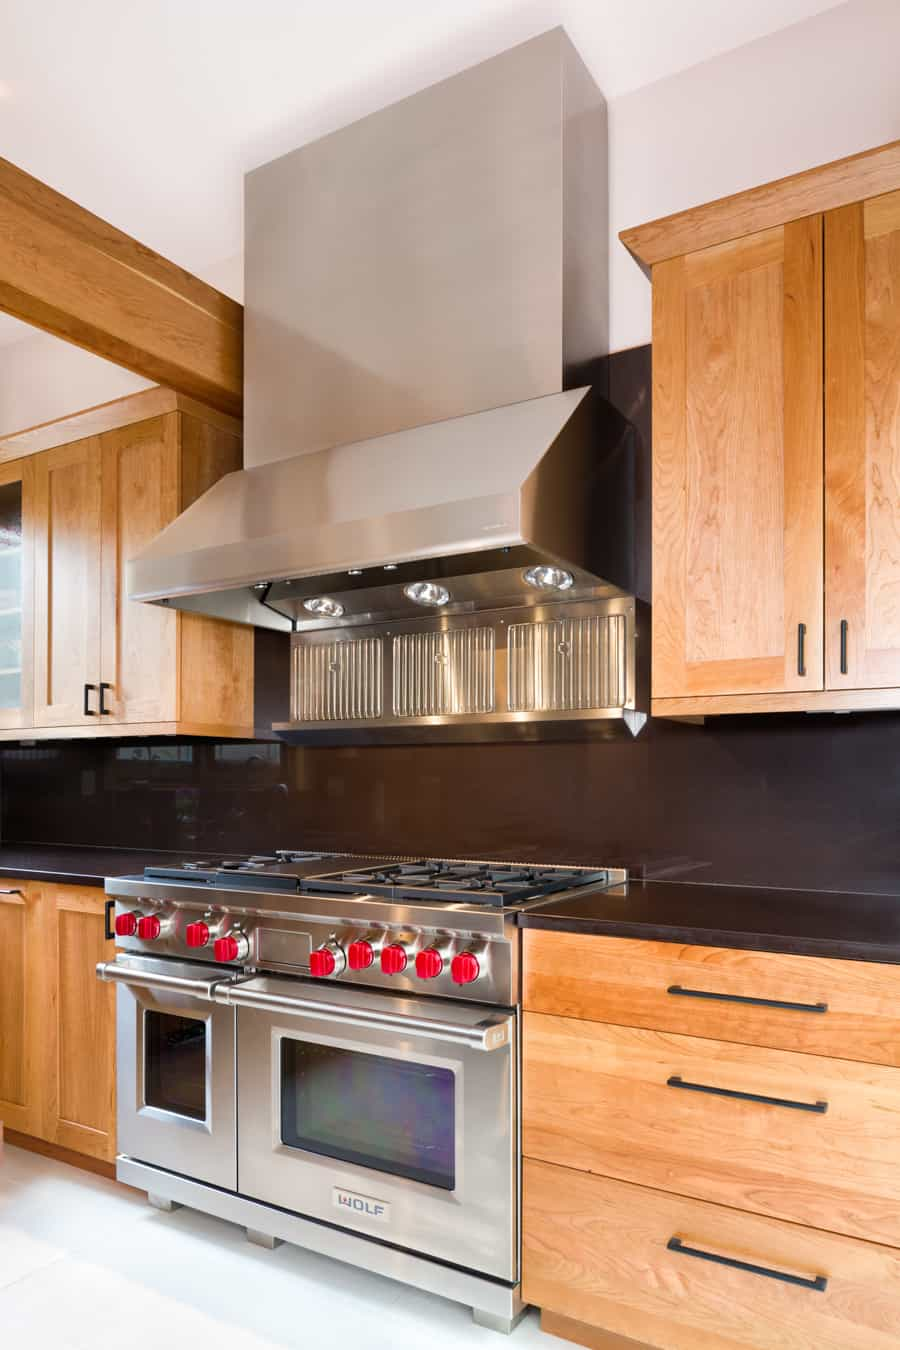 Melton Kitchen Renovation-Range & Hood